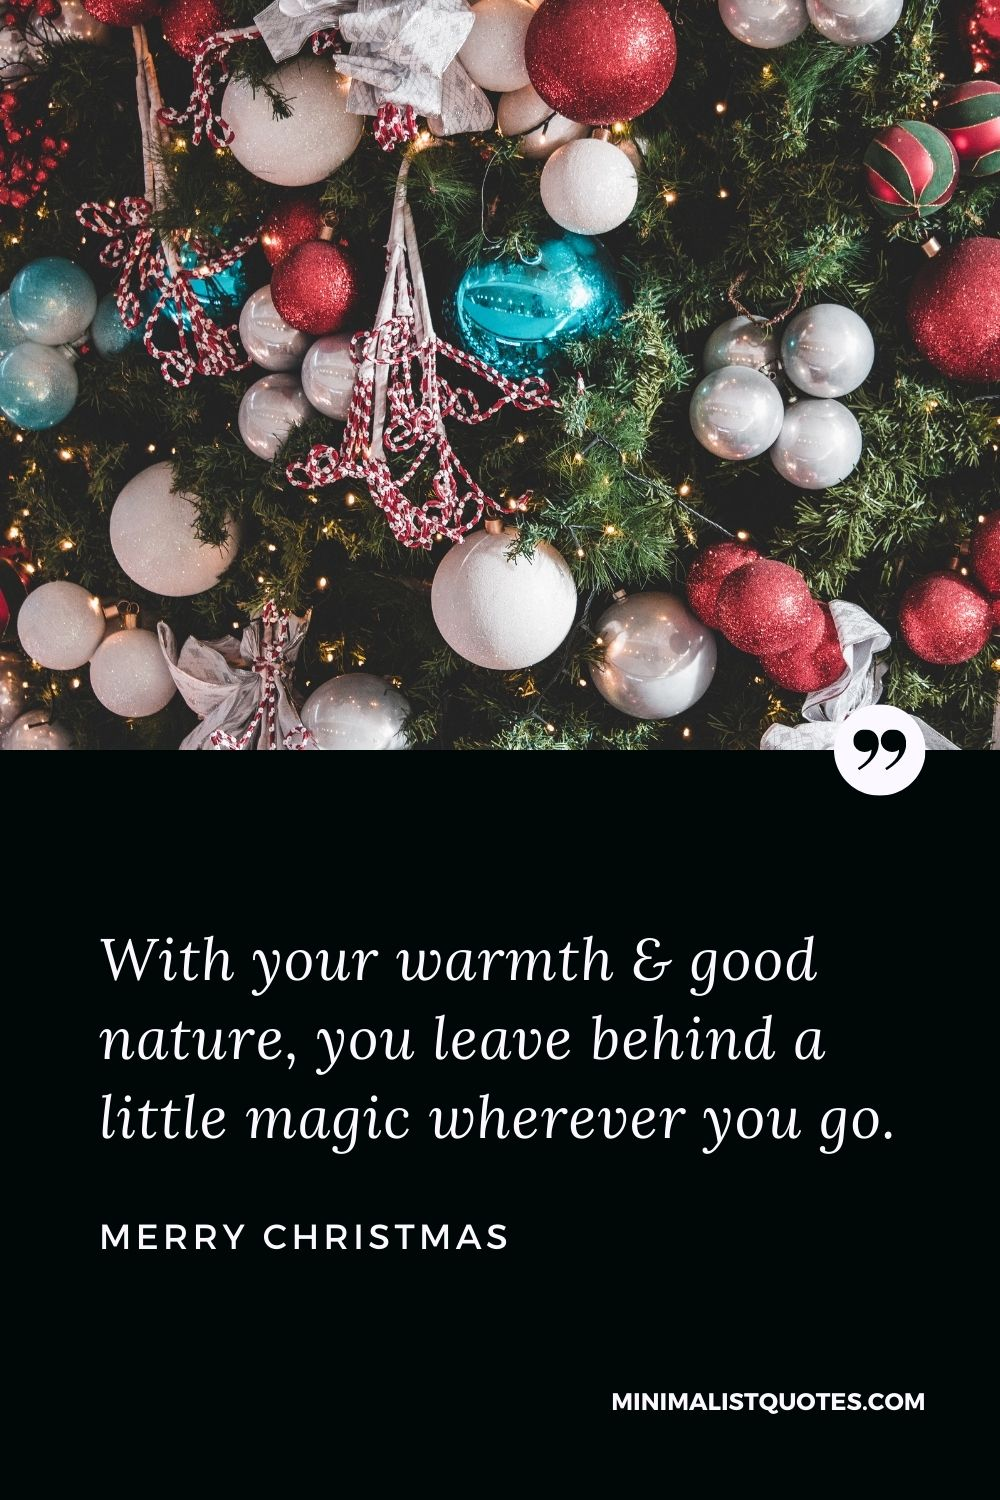 Merry Christmas Wish - With your warmth & good nature, you leave behind a little magic wherever you go.